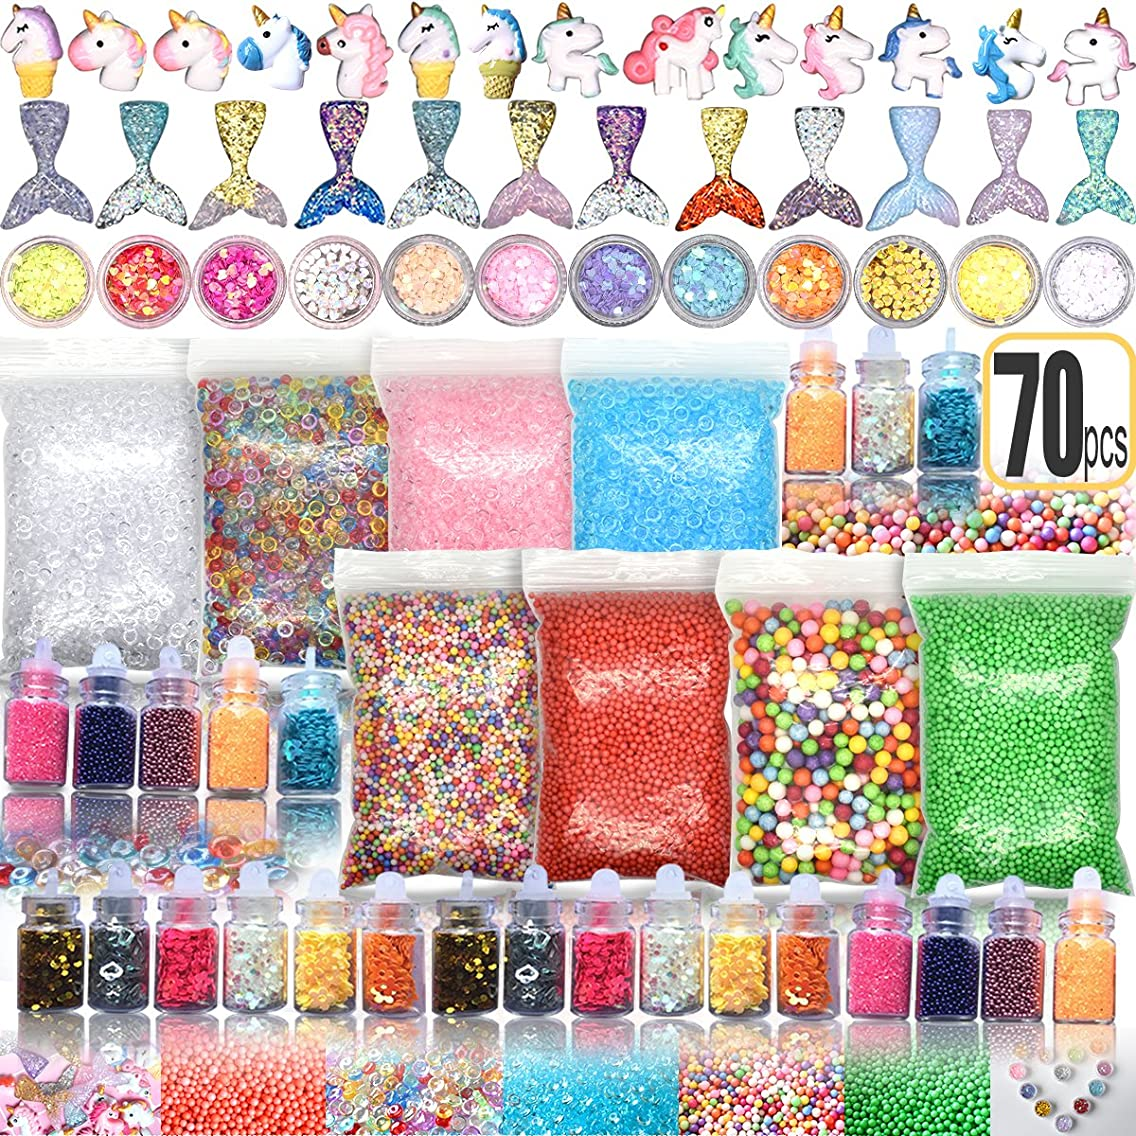 70PCS Slime Add Ins Slime Kit Floam Beads Fish Bowl Beads Mreaind Unicorn Slime Charms Glitter Jars Slime Supplies Kit(not Include Slime, and Packaging with Zipper Bag)